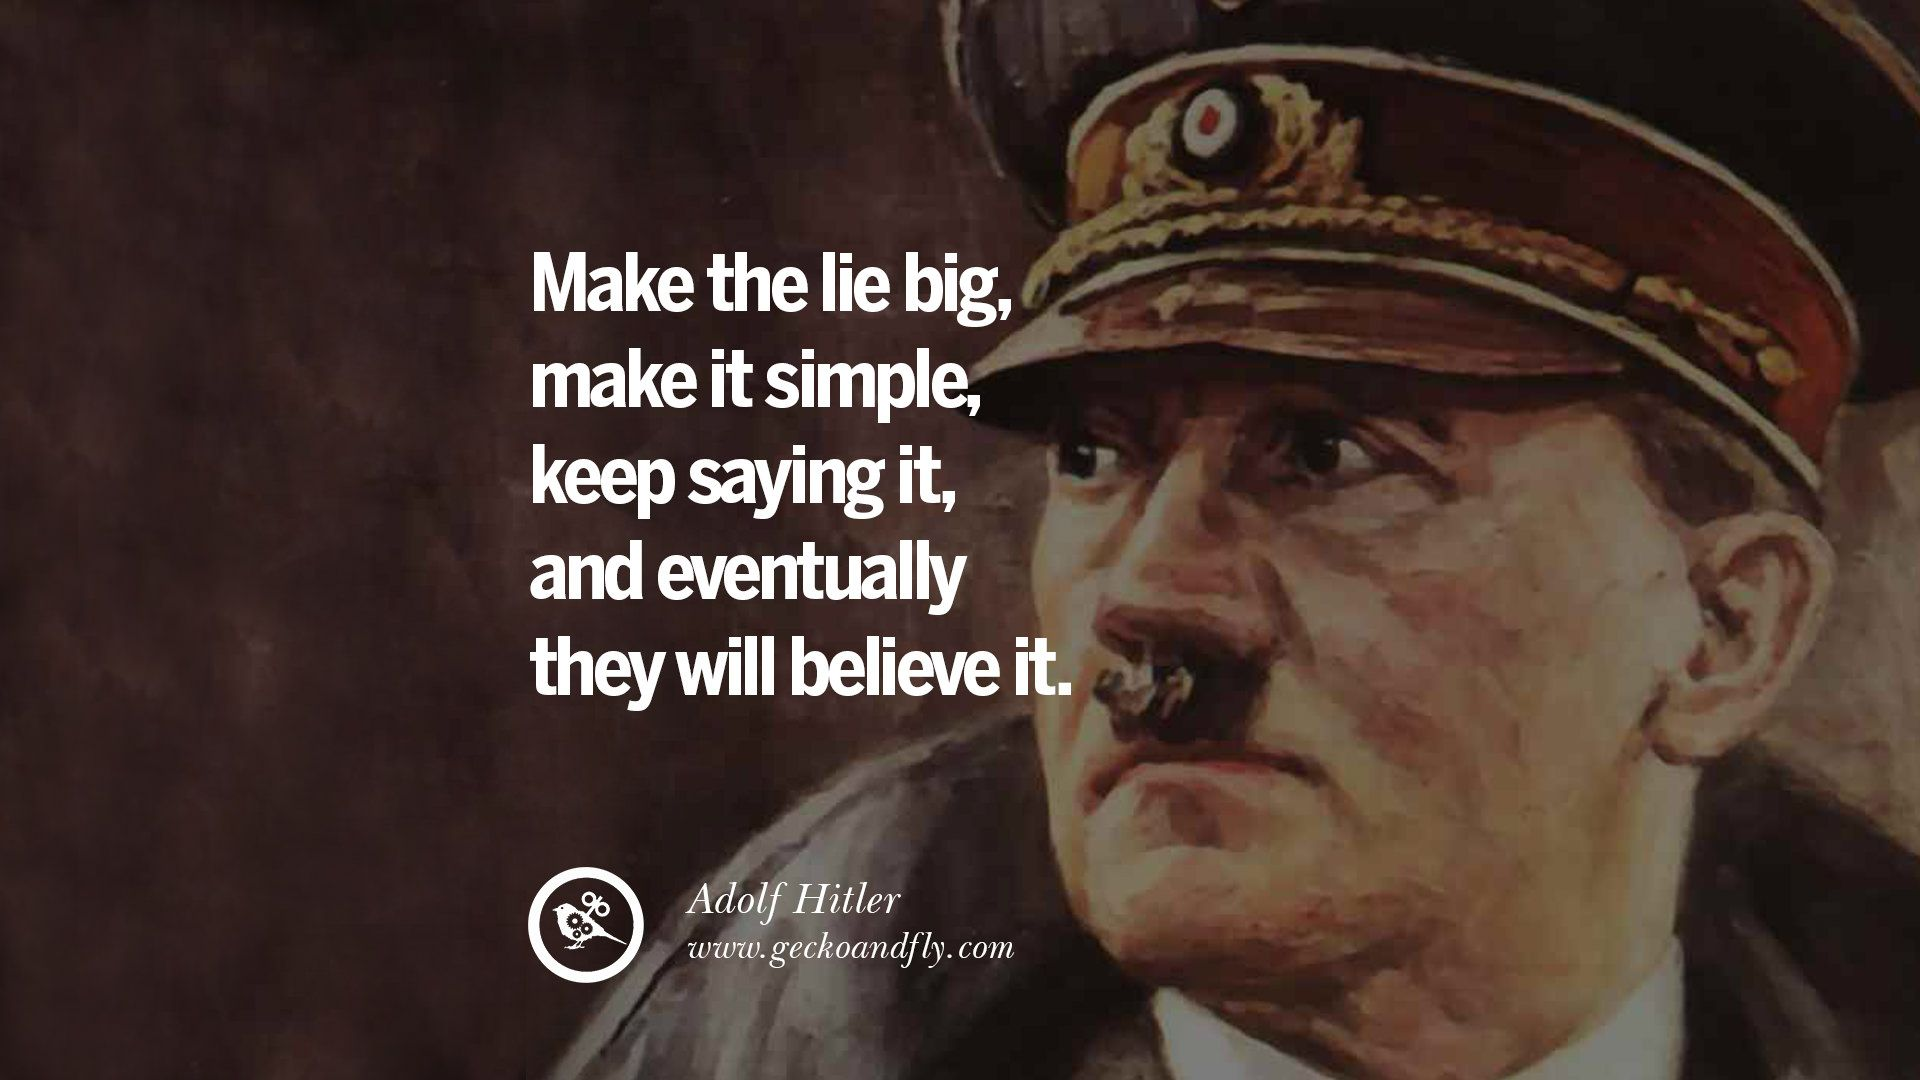 Delicieux Strength Lies Not In Defence But In Attack. 40 Adolf Hitler Quotes On War,  Politics, Nationalism, And Lies | Inspirational Quotes | Pinterest |  Politics And ...